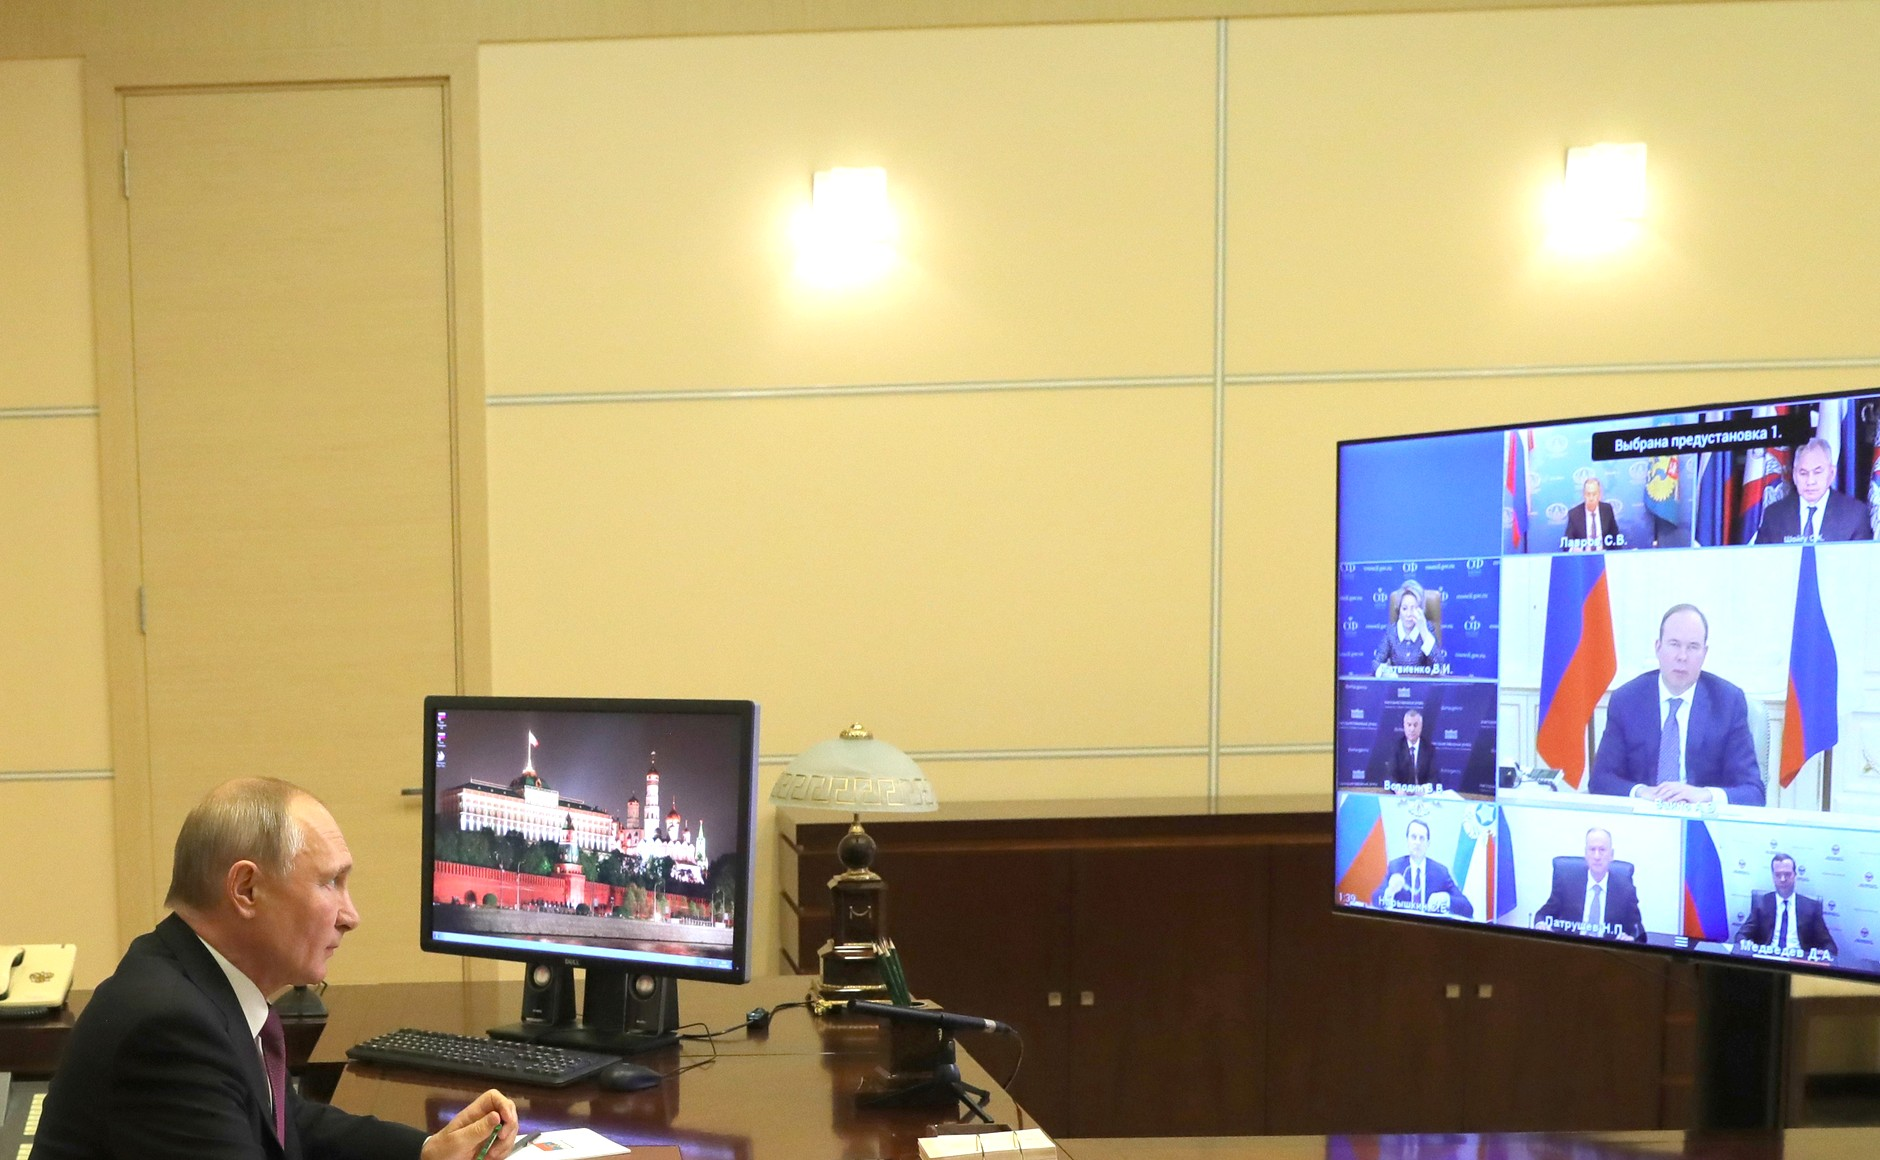 Vladimir Putin chaired a meeting of permanent members of the Security Council via videoconference.